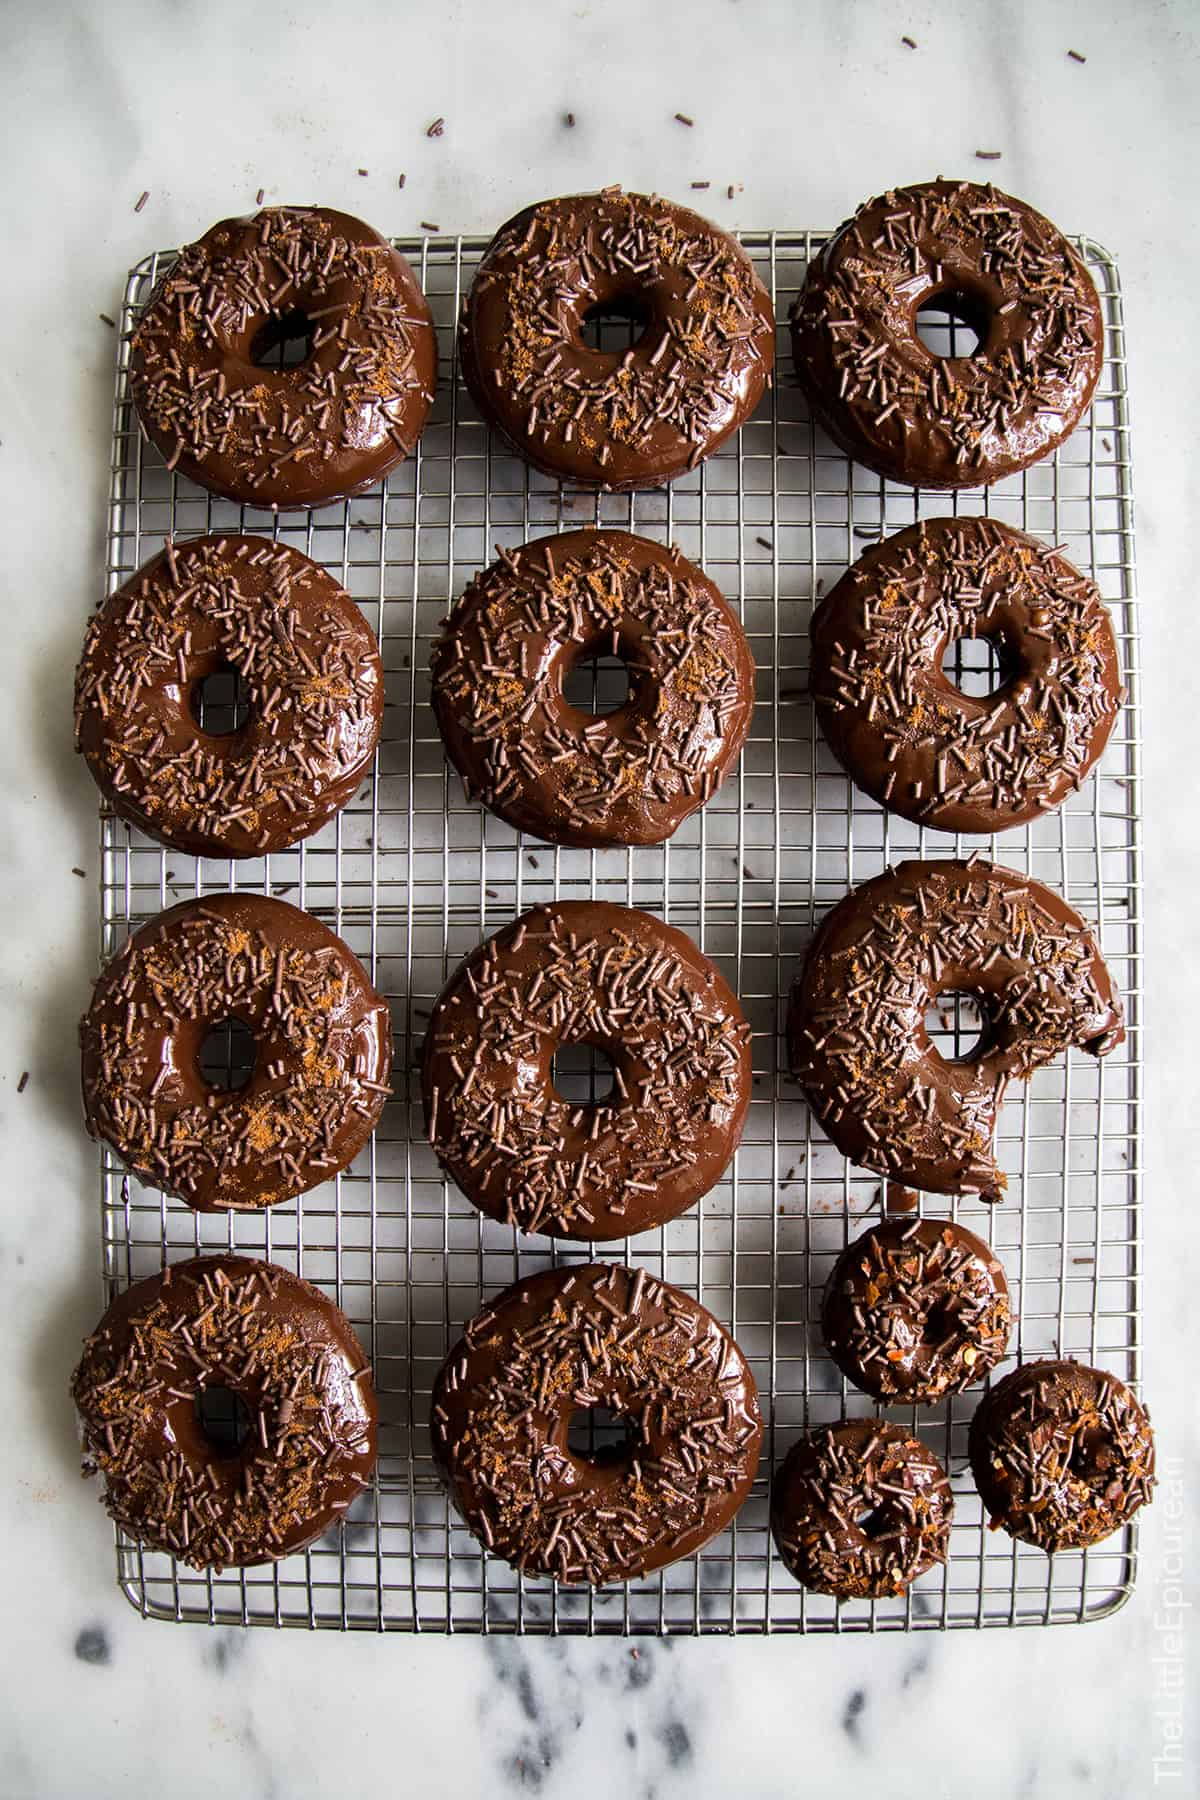 Baked Cayenne Chocolate Donuts The Little Epicurean